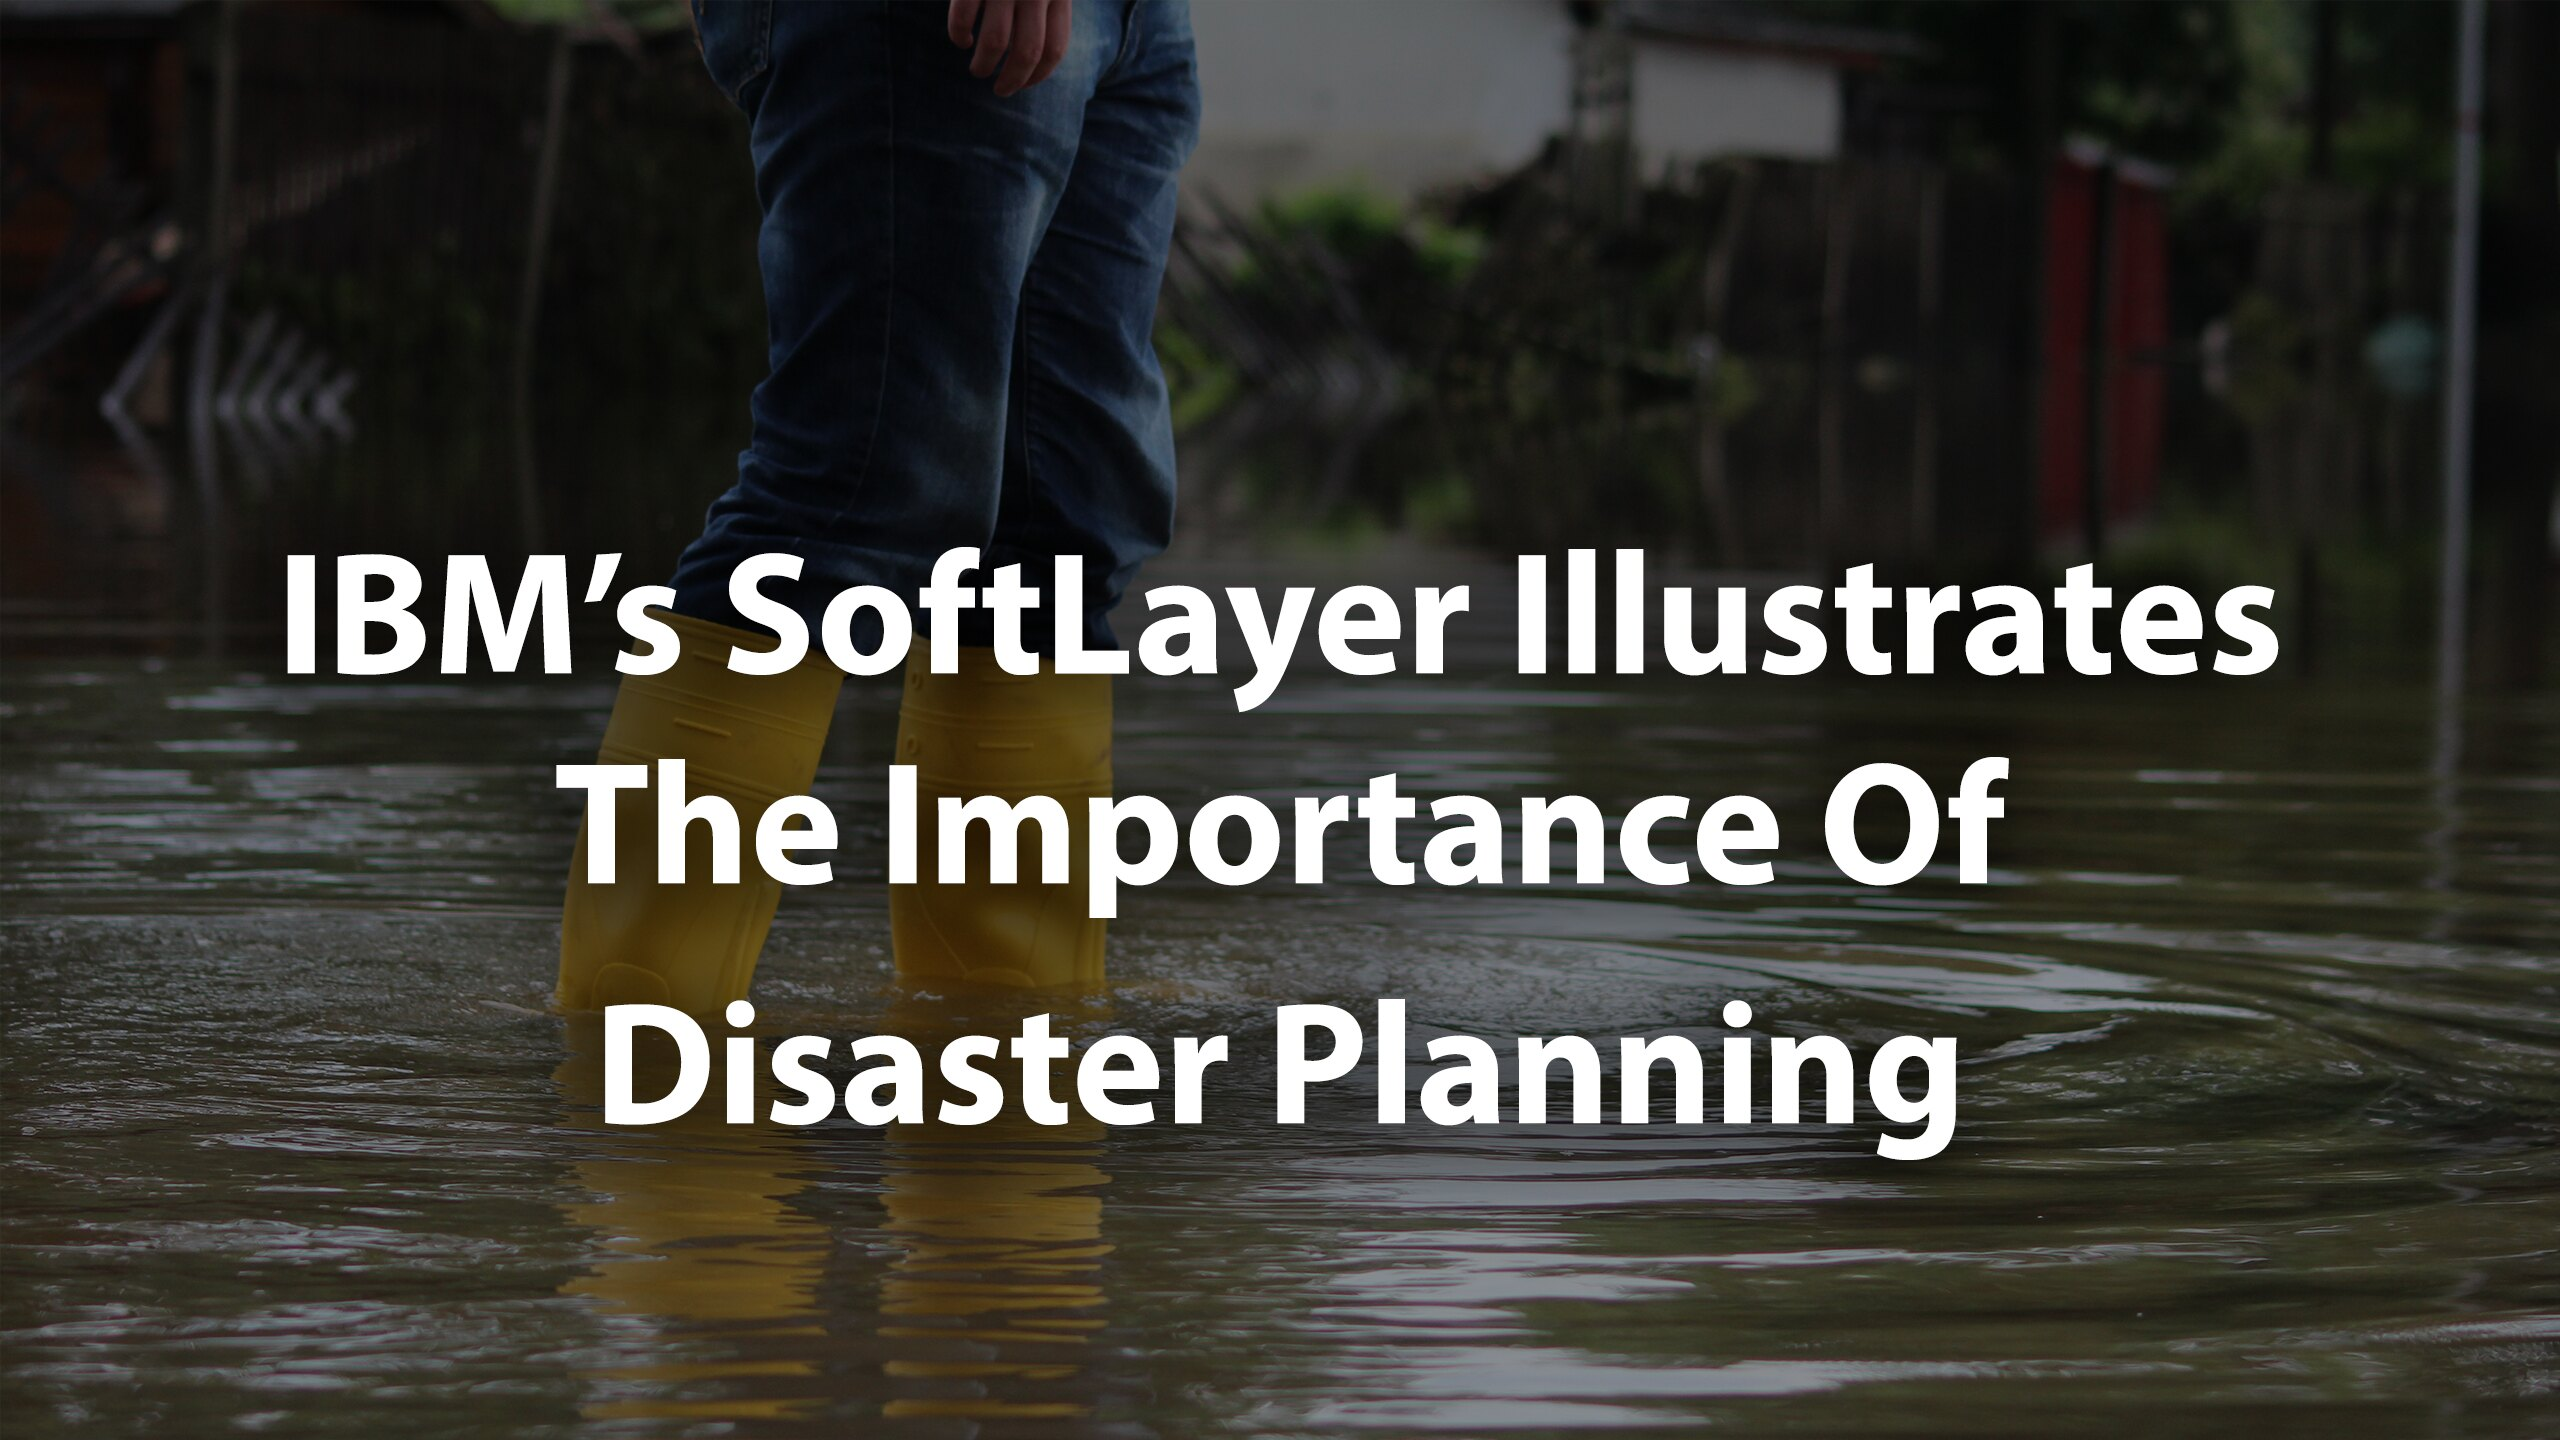 SoftLayer Illustrates the Importance of Disaster Planning